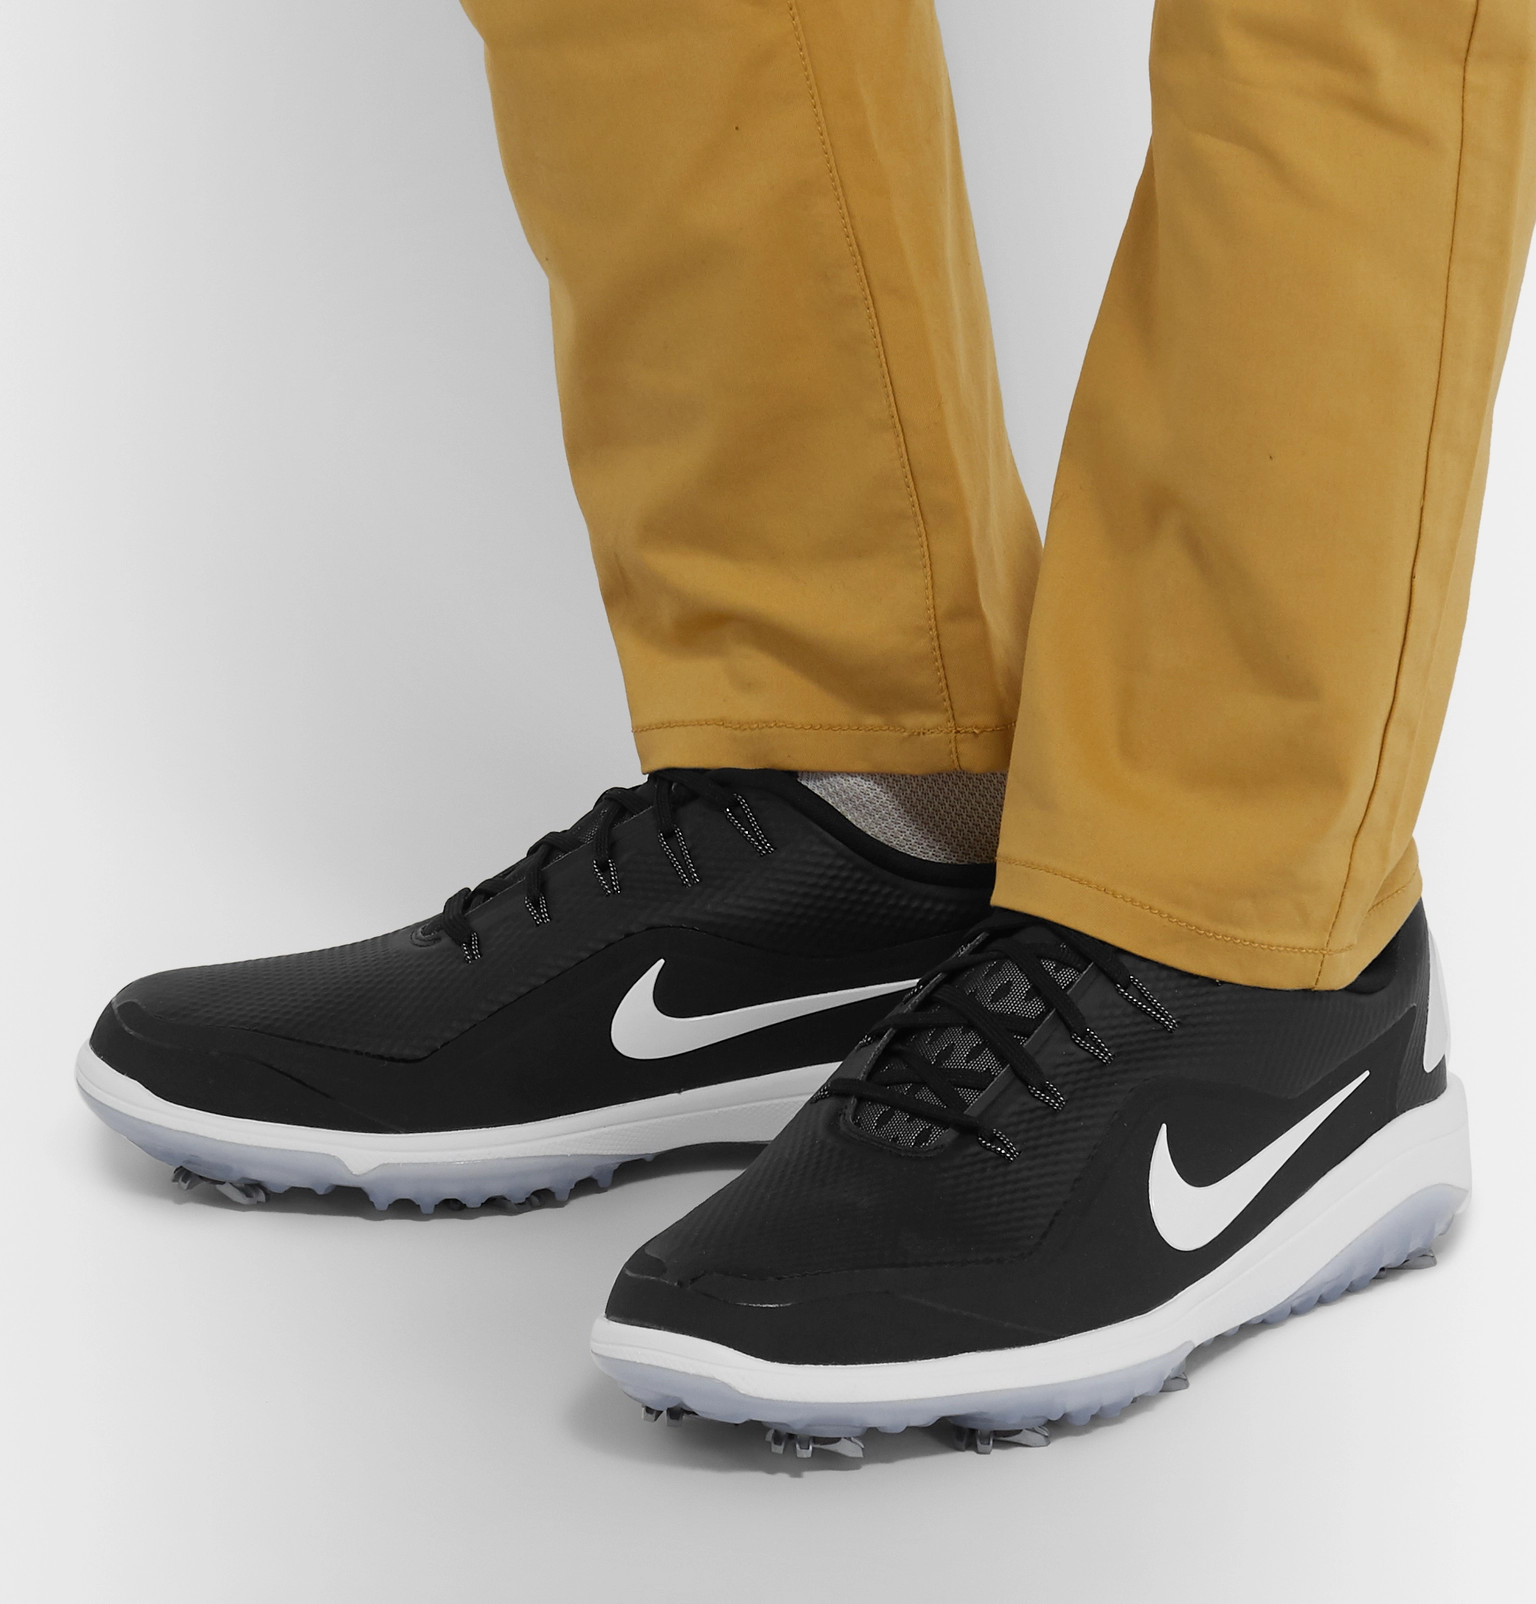 online retailer ad76c b5a14 Nike GolfReact Vapor 2 Coated-Mesh Golf Shoes